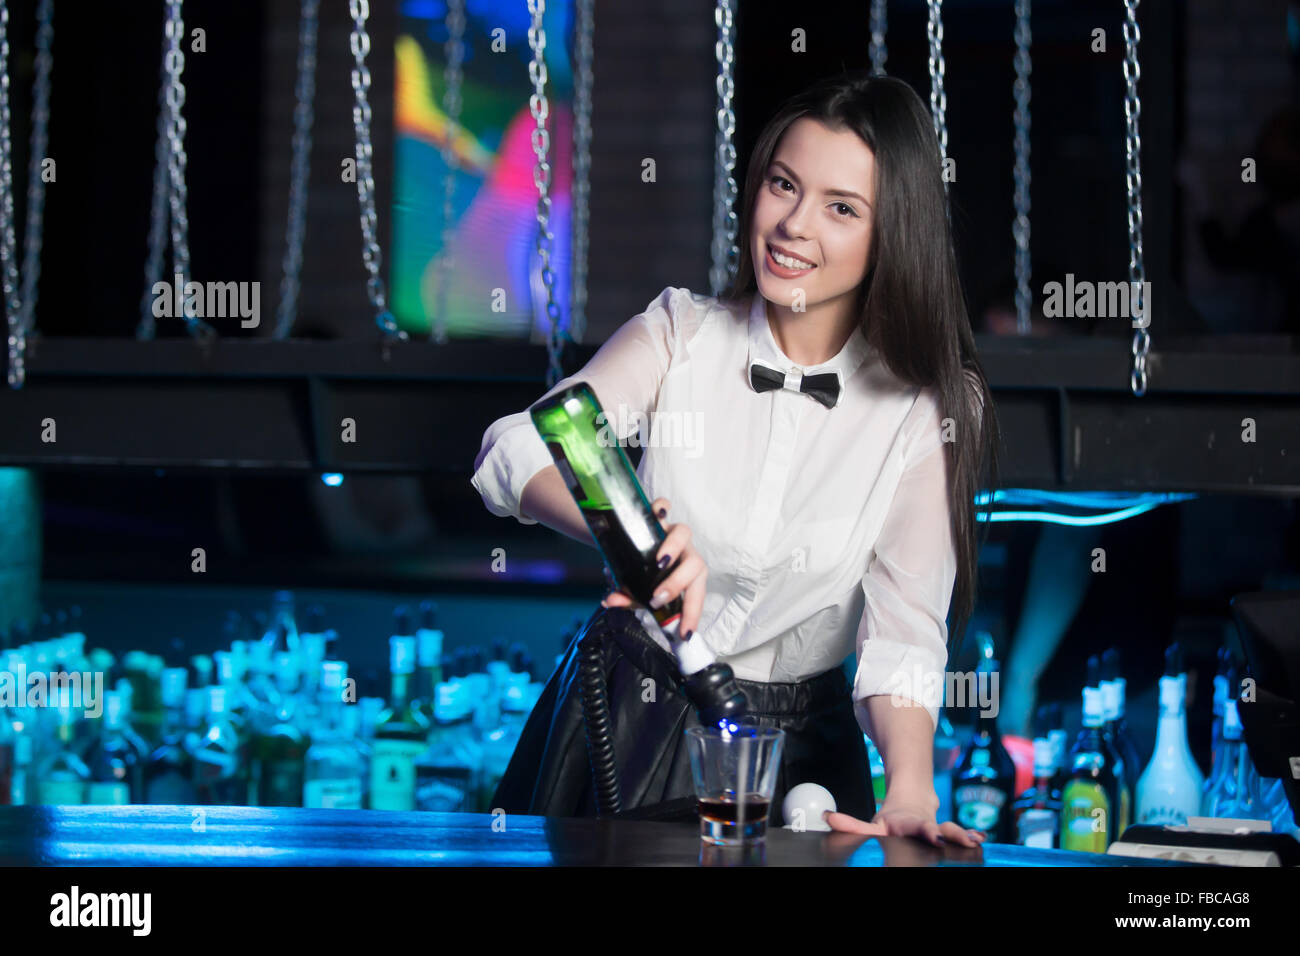 Beautiful cheerful brunette bartender girl in white shirt and black bow tie, serving alcohol drink at bar counter, - Stock Image